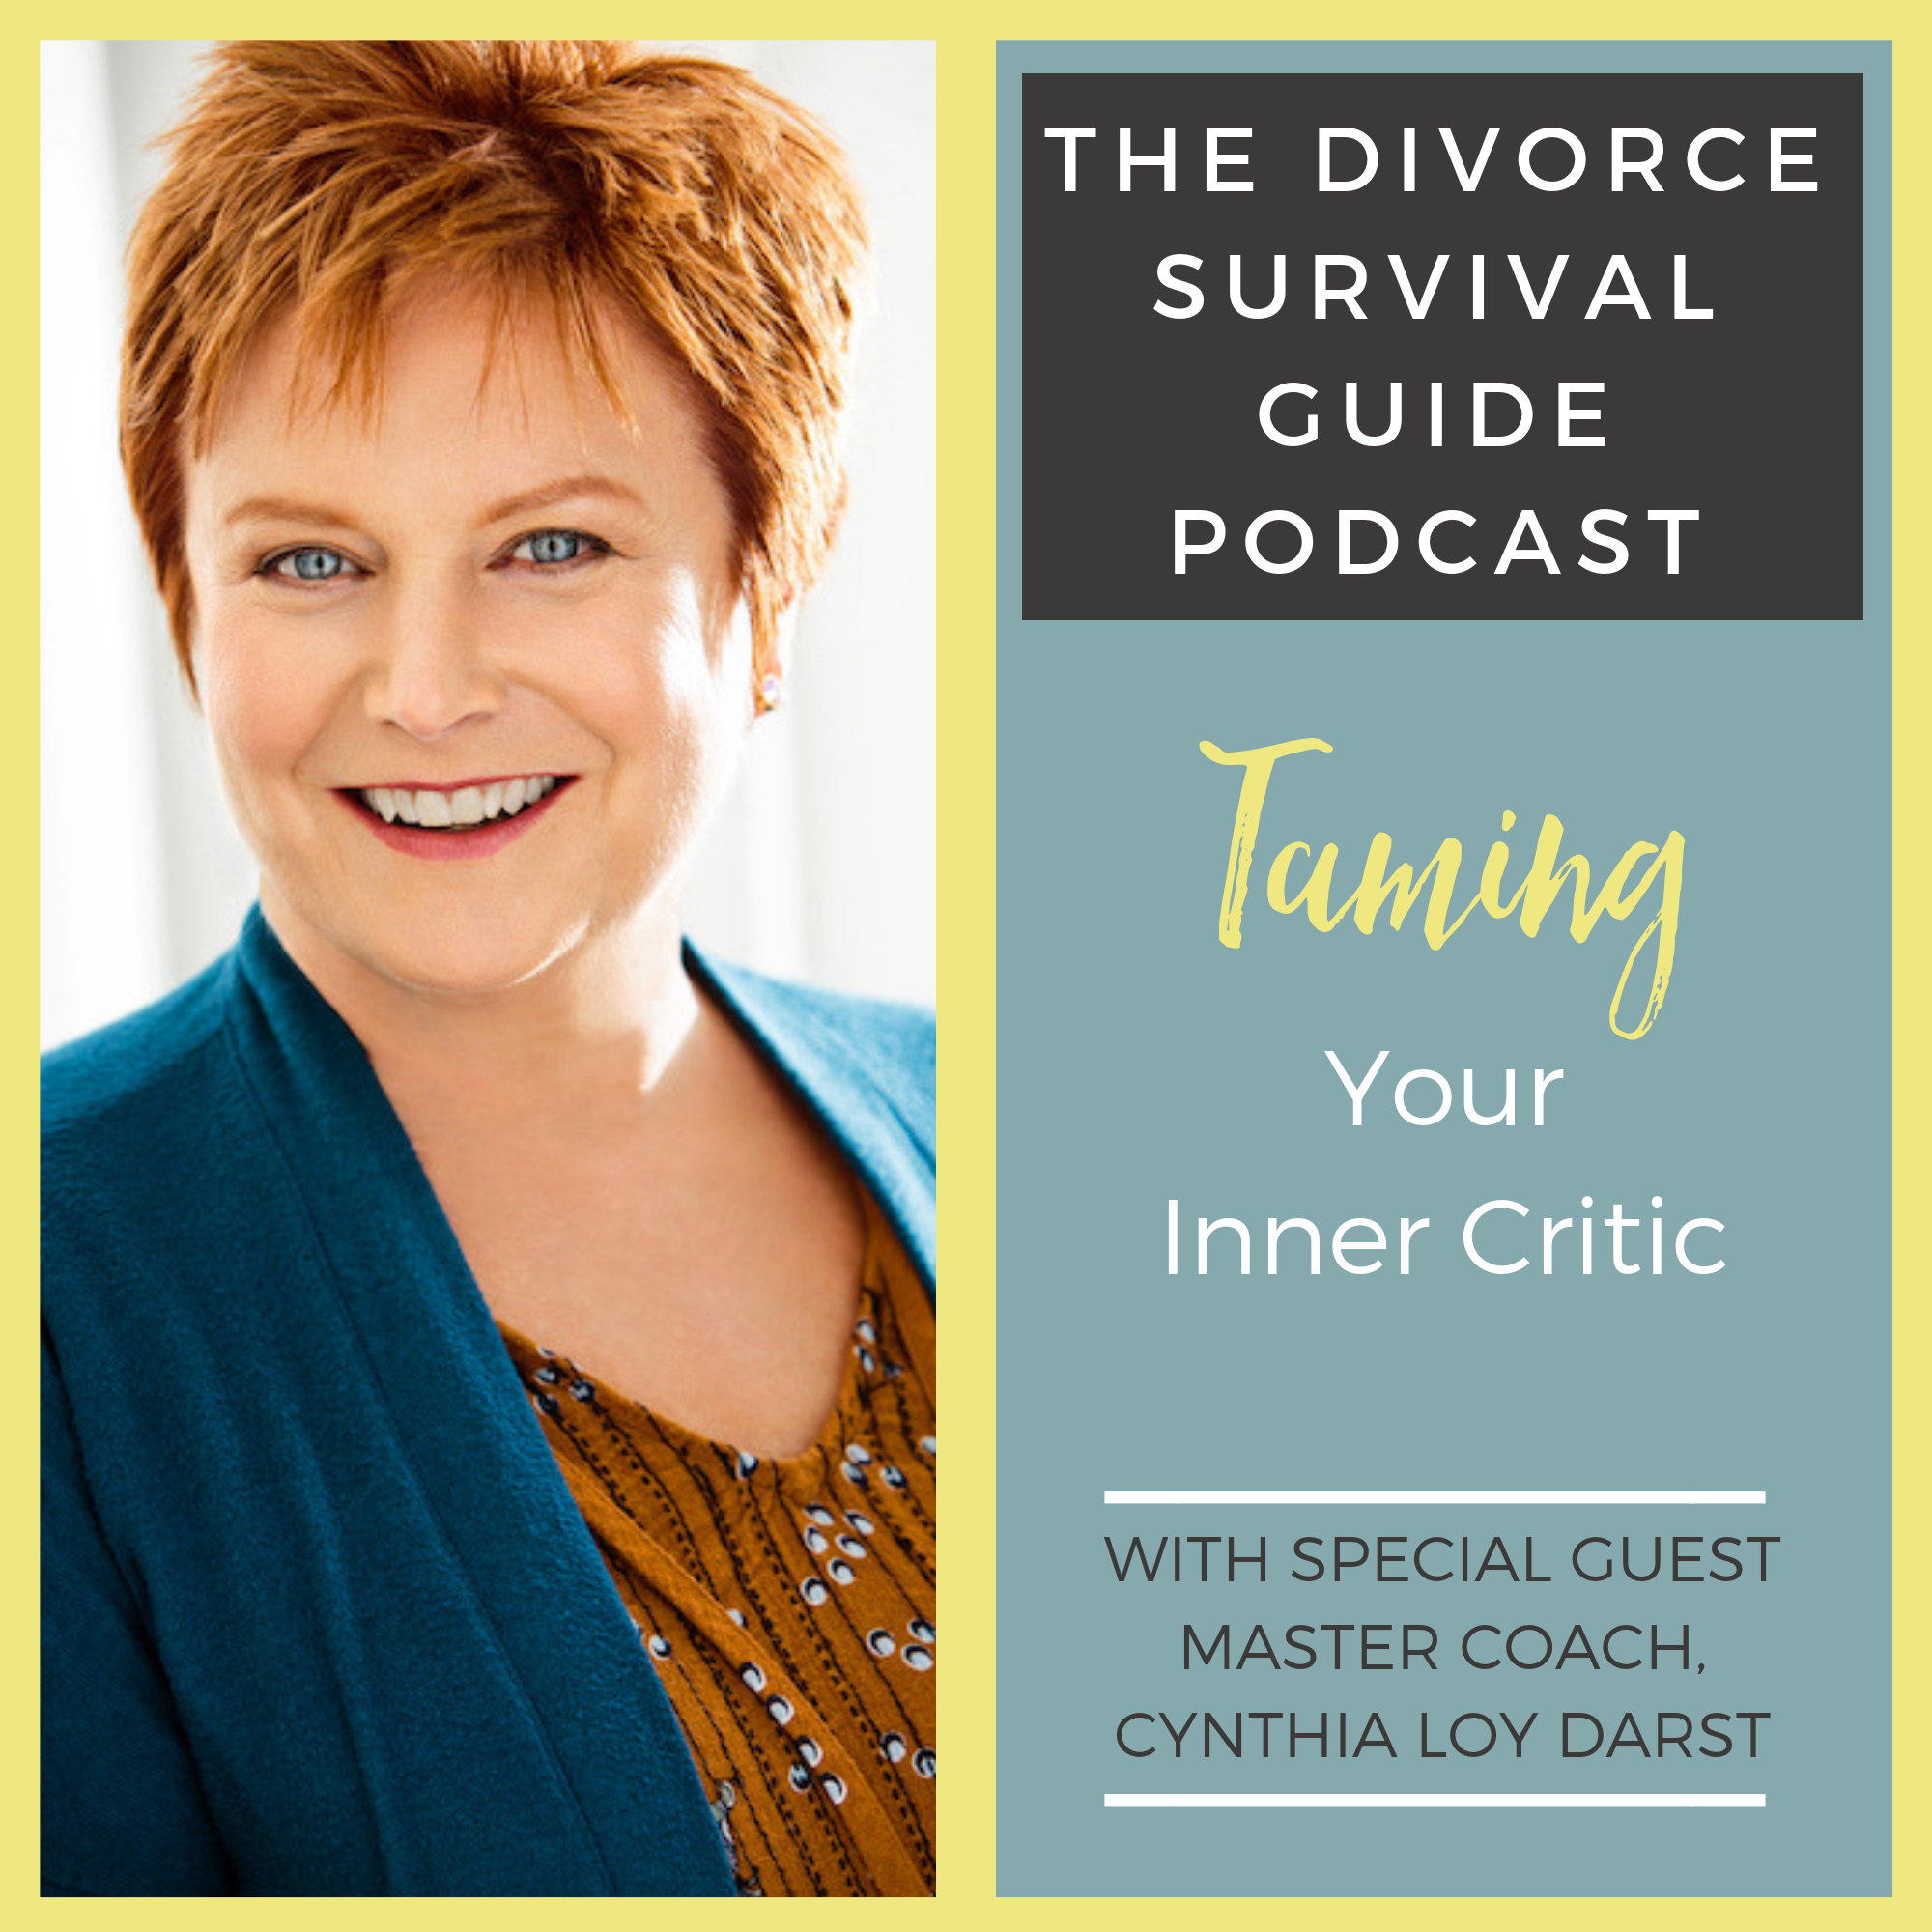 The Divorce Survival Guide Podcast - Taming Your Inner Critic with Master Coach, Cynthia Loy Darst